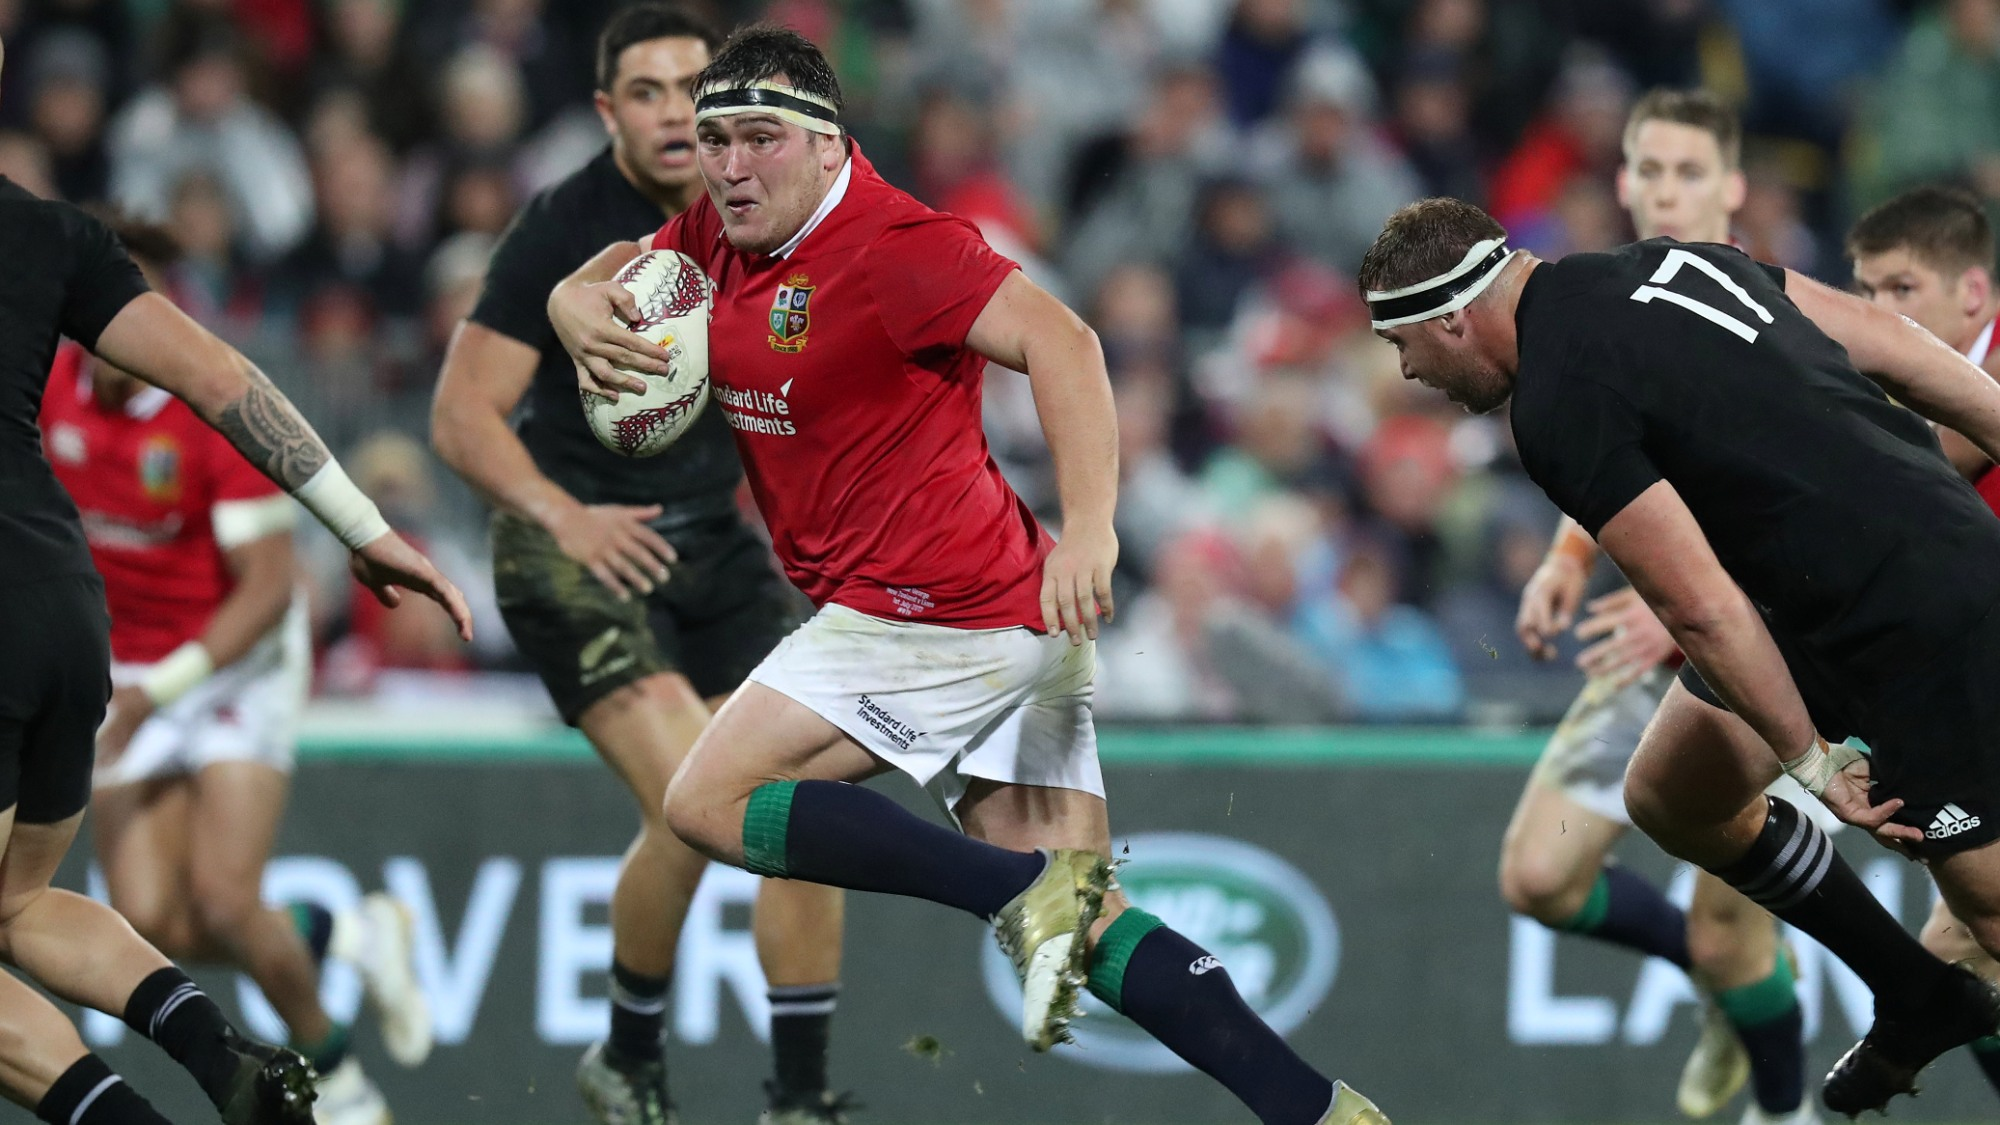 George wants Lions to control their emotions in decider